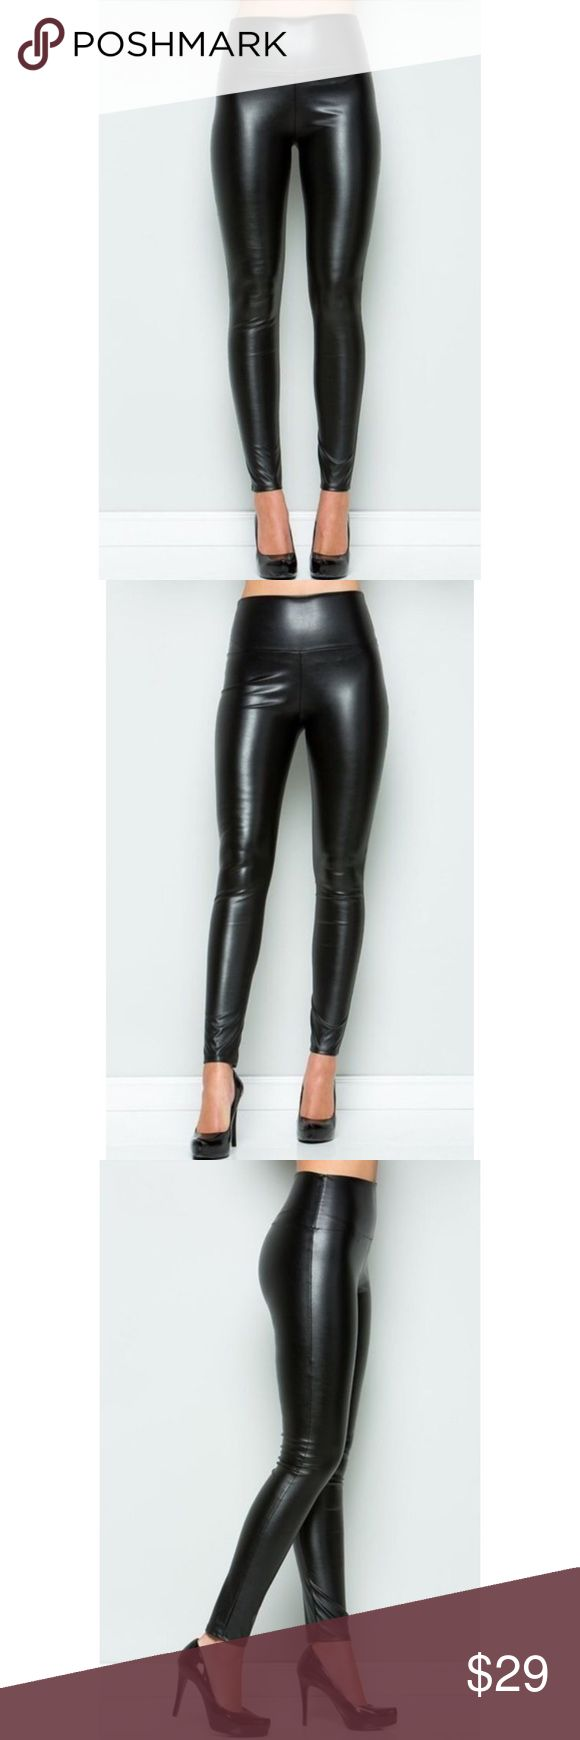 🆕 Black Wet Look High Waist Faux Leather Leggings New with tags. Super soft and comfortable while still fashionable. Pair with a chunky sweater and boots for the perfect look.                                                                        🌸95% polyester, 5% spandex.                                                                ❌SORRY, NO TRADES. The O Boutique Pants Leggings